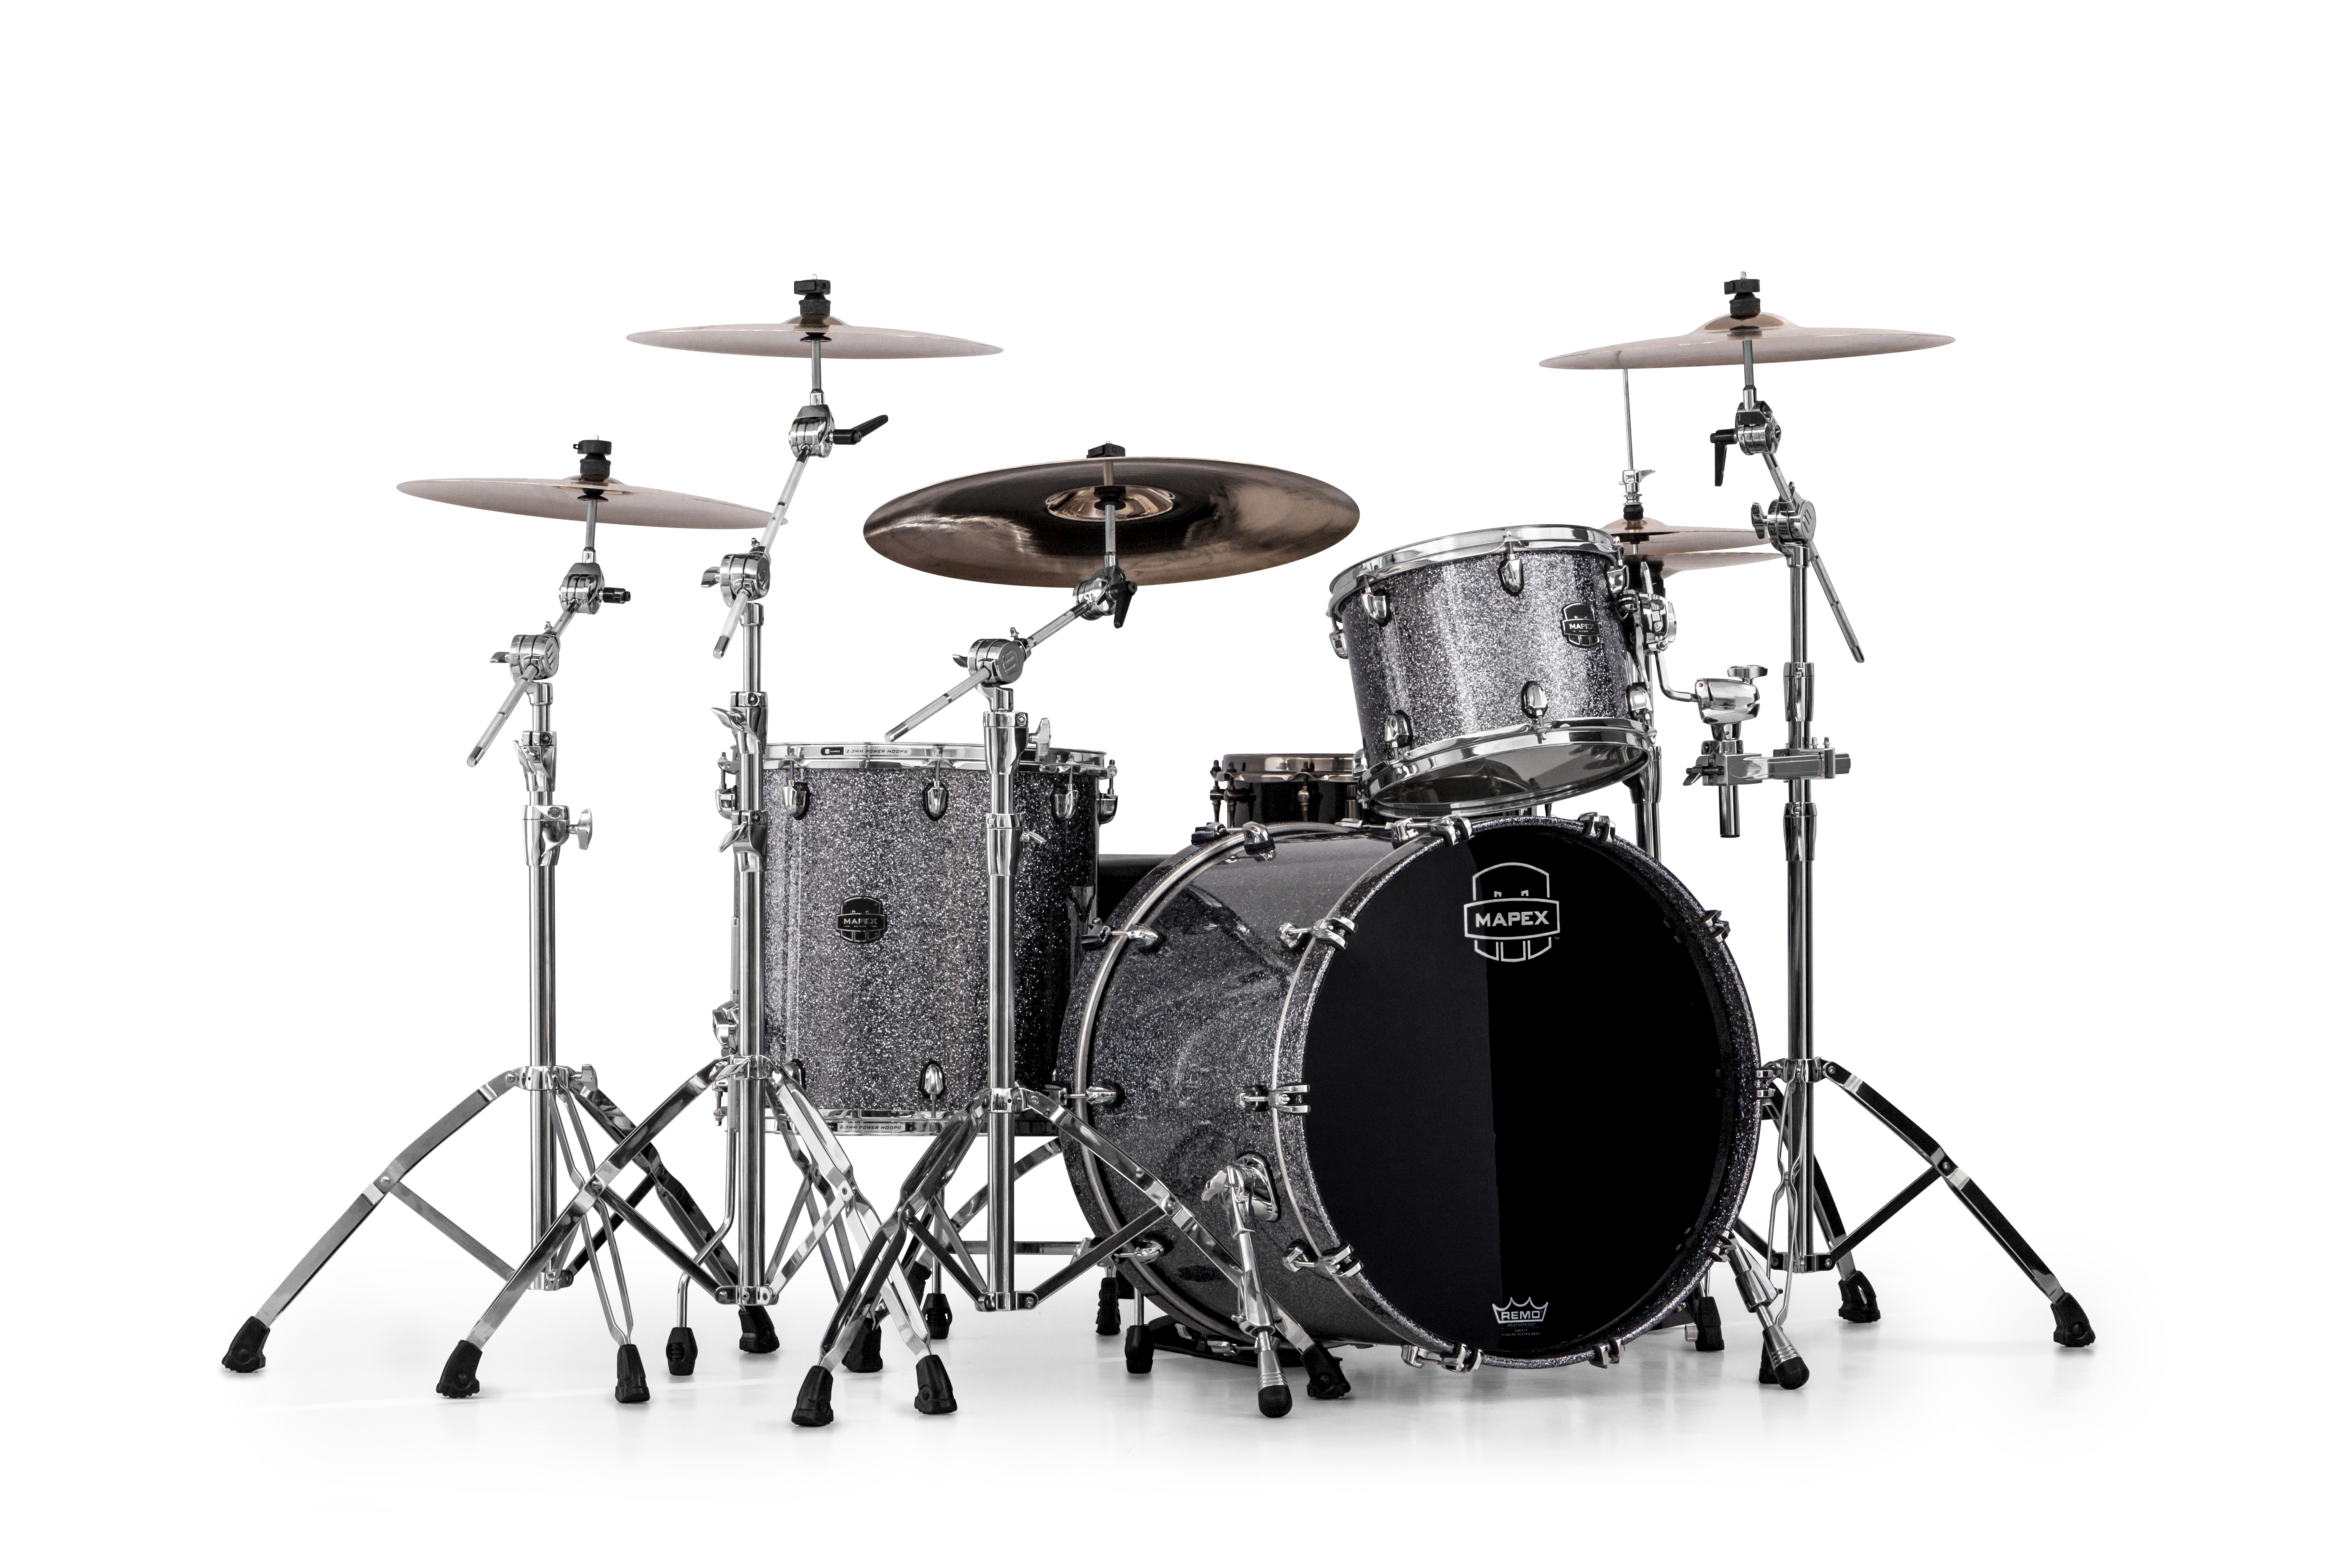 Mapex Saturn V MH Rock 3-piece shell pack with SONIClear Edge - SV426XQL - Granite Sparkle